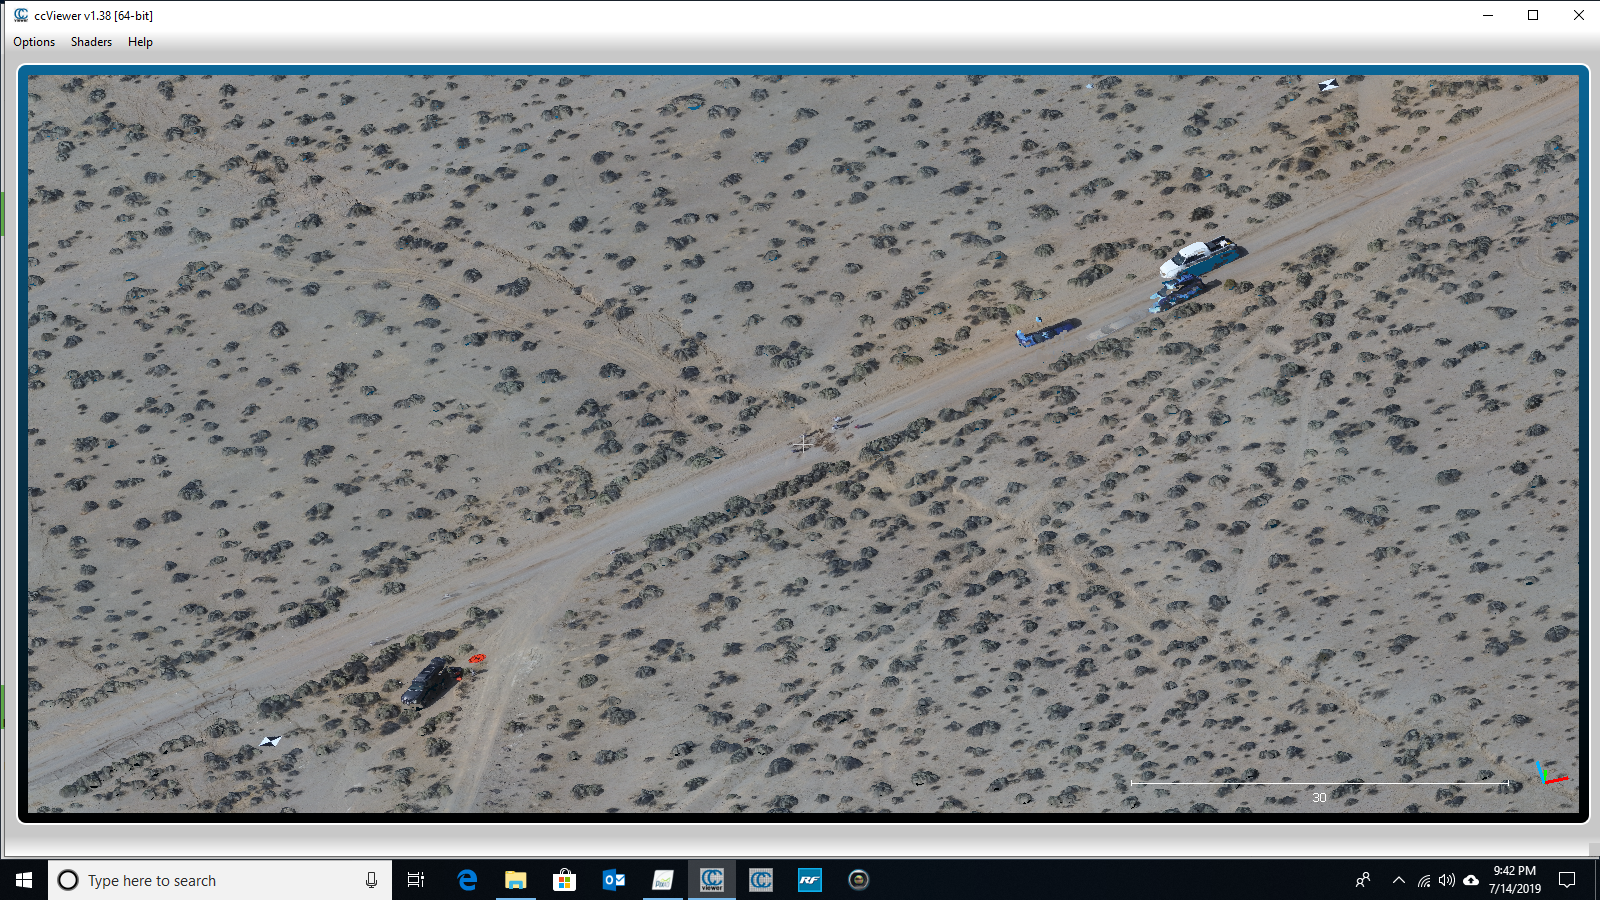 NASA GeoGateway Team Uses Drones to Map in 3D the 2019